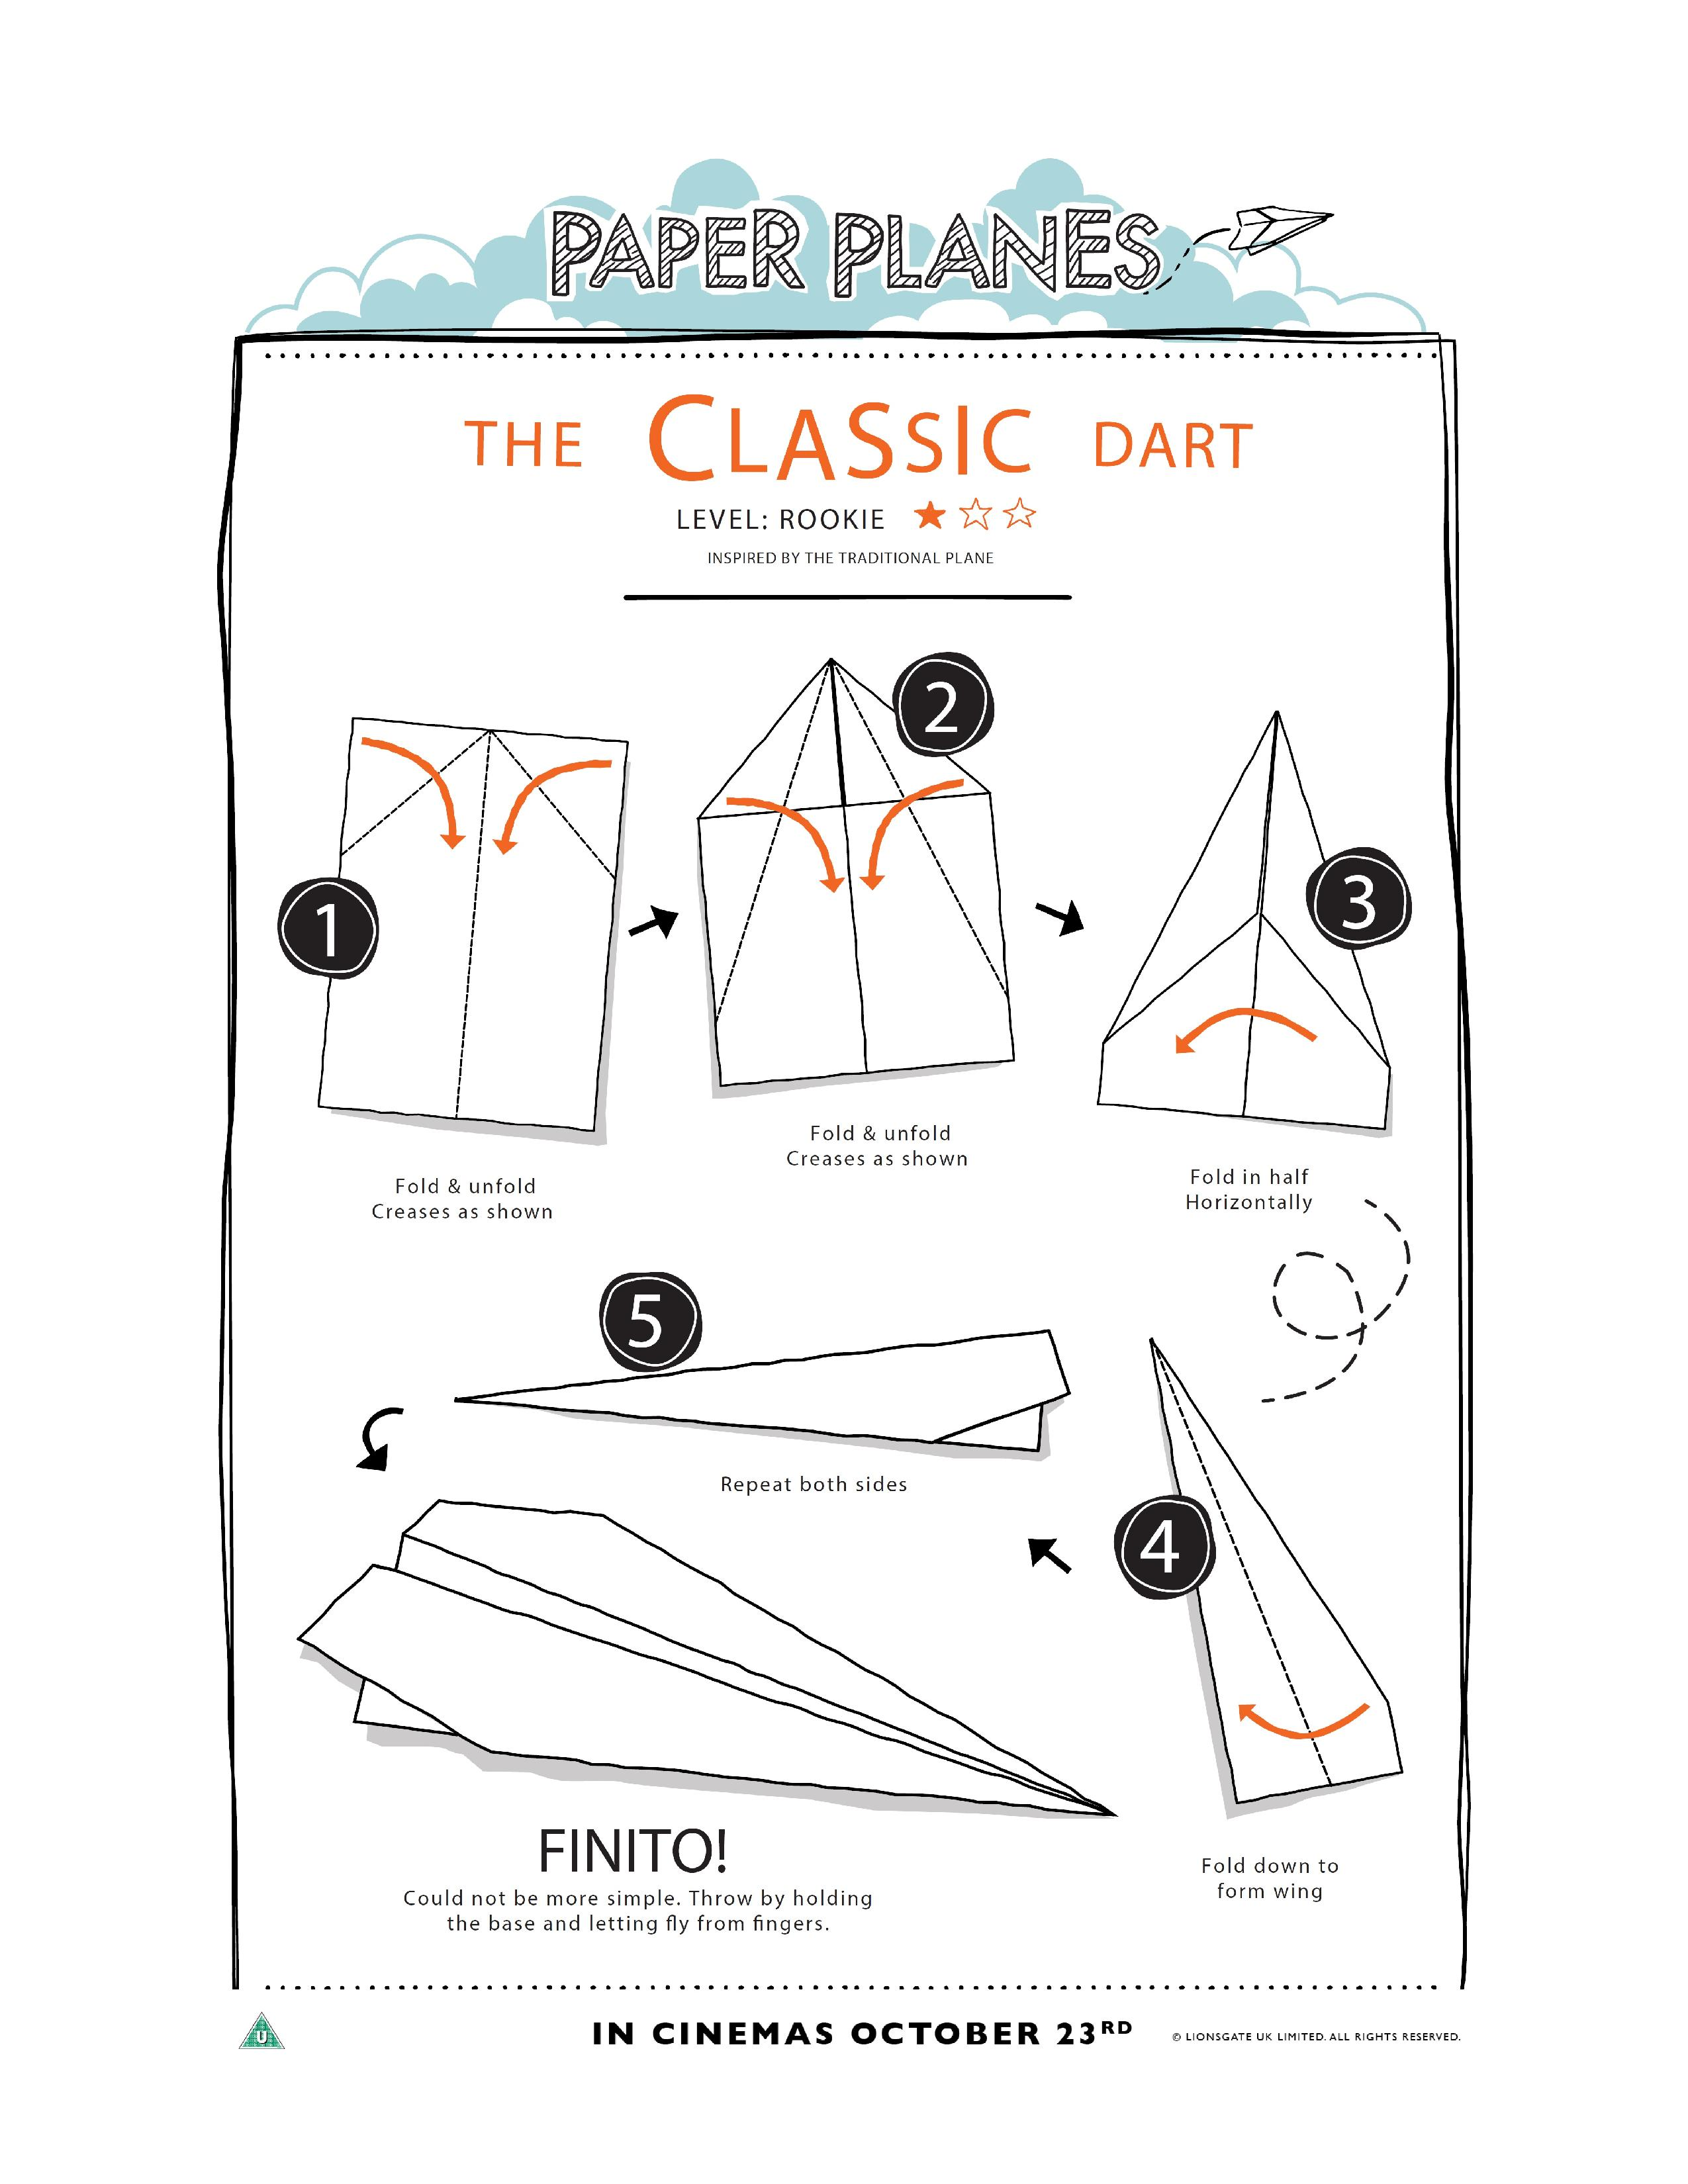 How to Fold Paper Planes - In The Playroom Paper Plane Diagram on paper plane graphic, paper plane model, paper plane pattern, paper plane color, paper plane painting, paper plane drawing, helicopter diagram, paper plane icon, paper plane illustration, paper plane art, paper plane cartoon, paper plane paper, paper plane letter, paper plane note, paper plane template, paper plane outline, paper plane blueprints, paper plane title, paper plane project, paper plane layout,